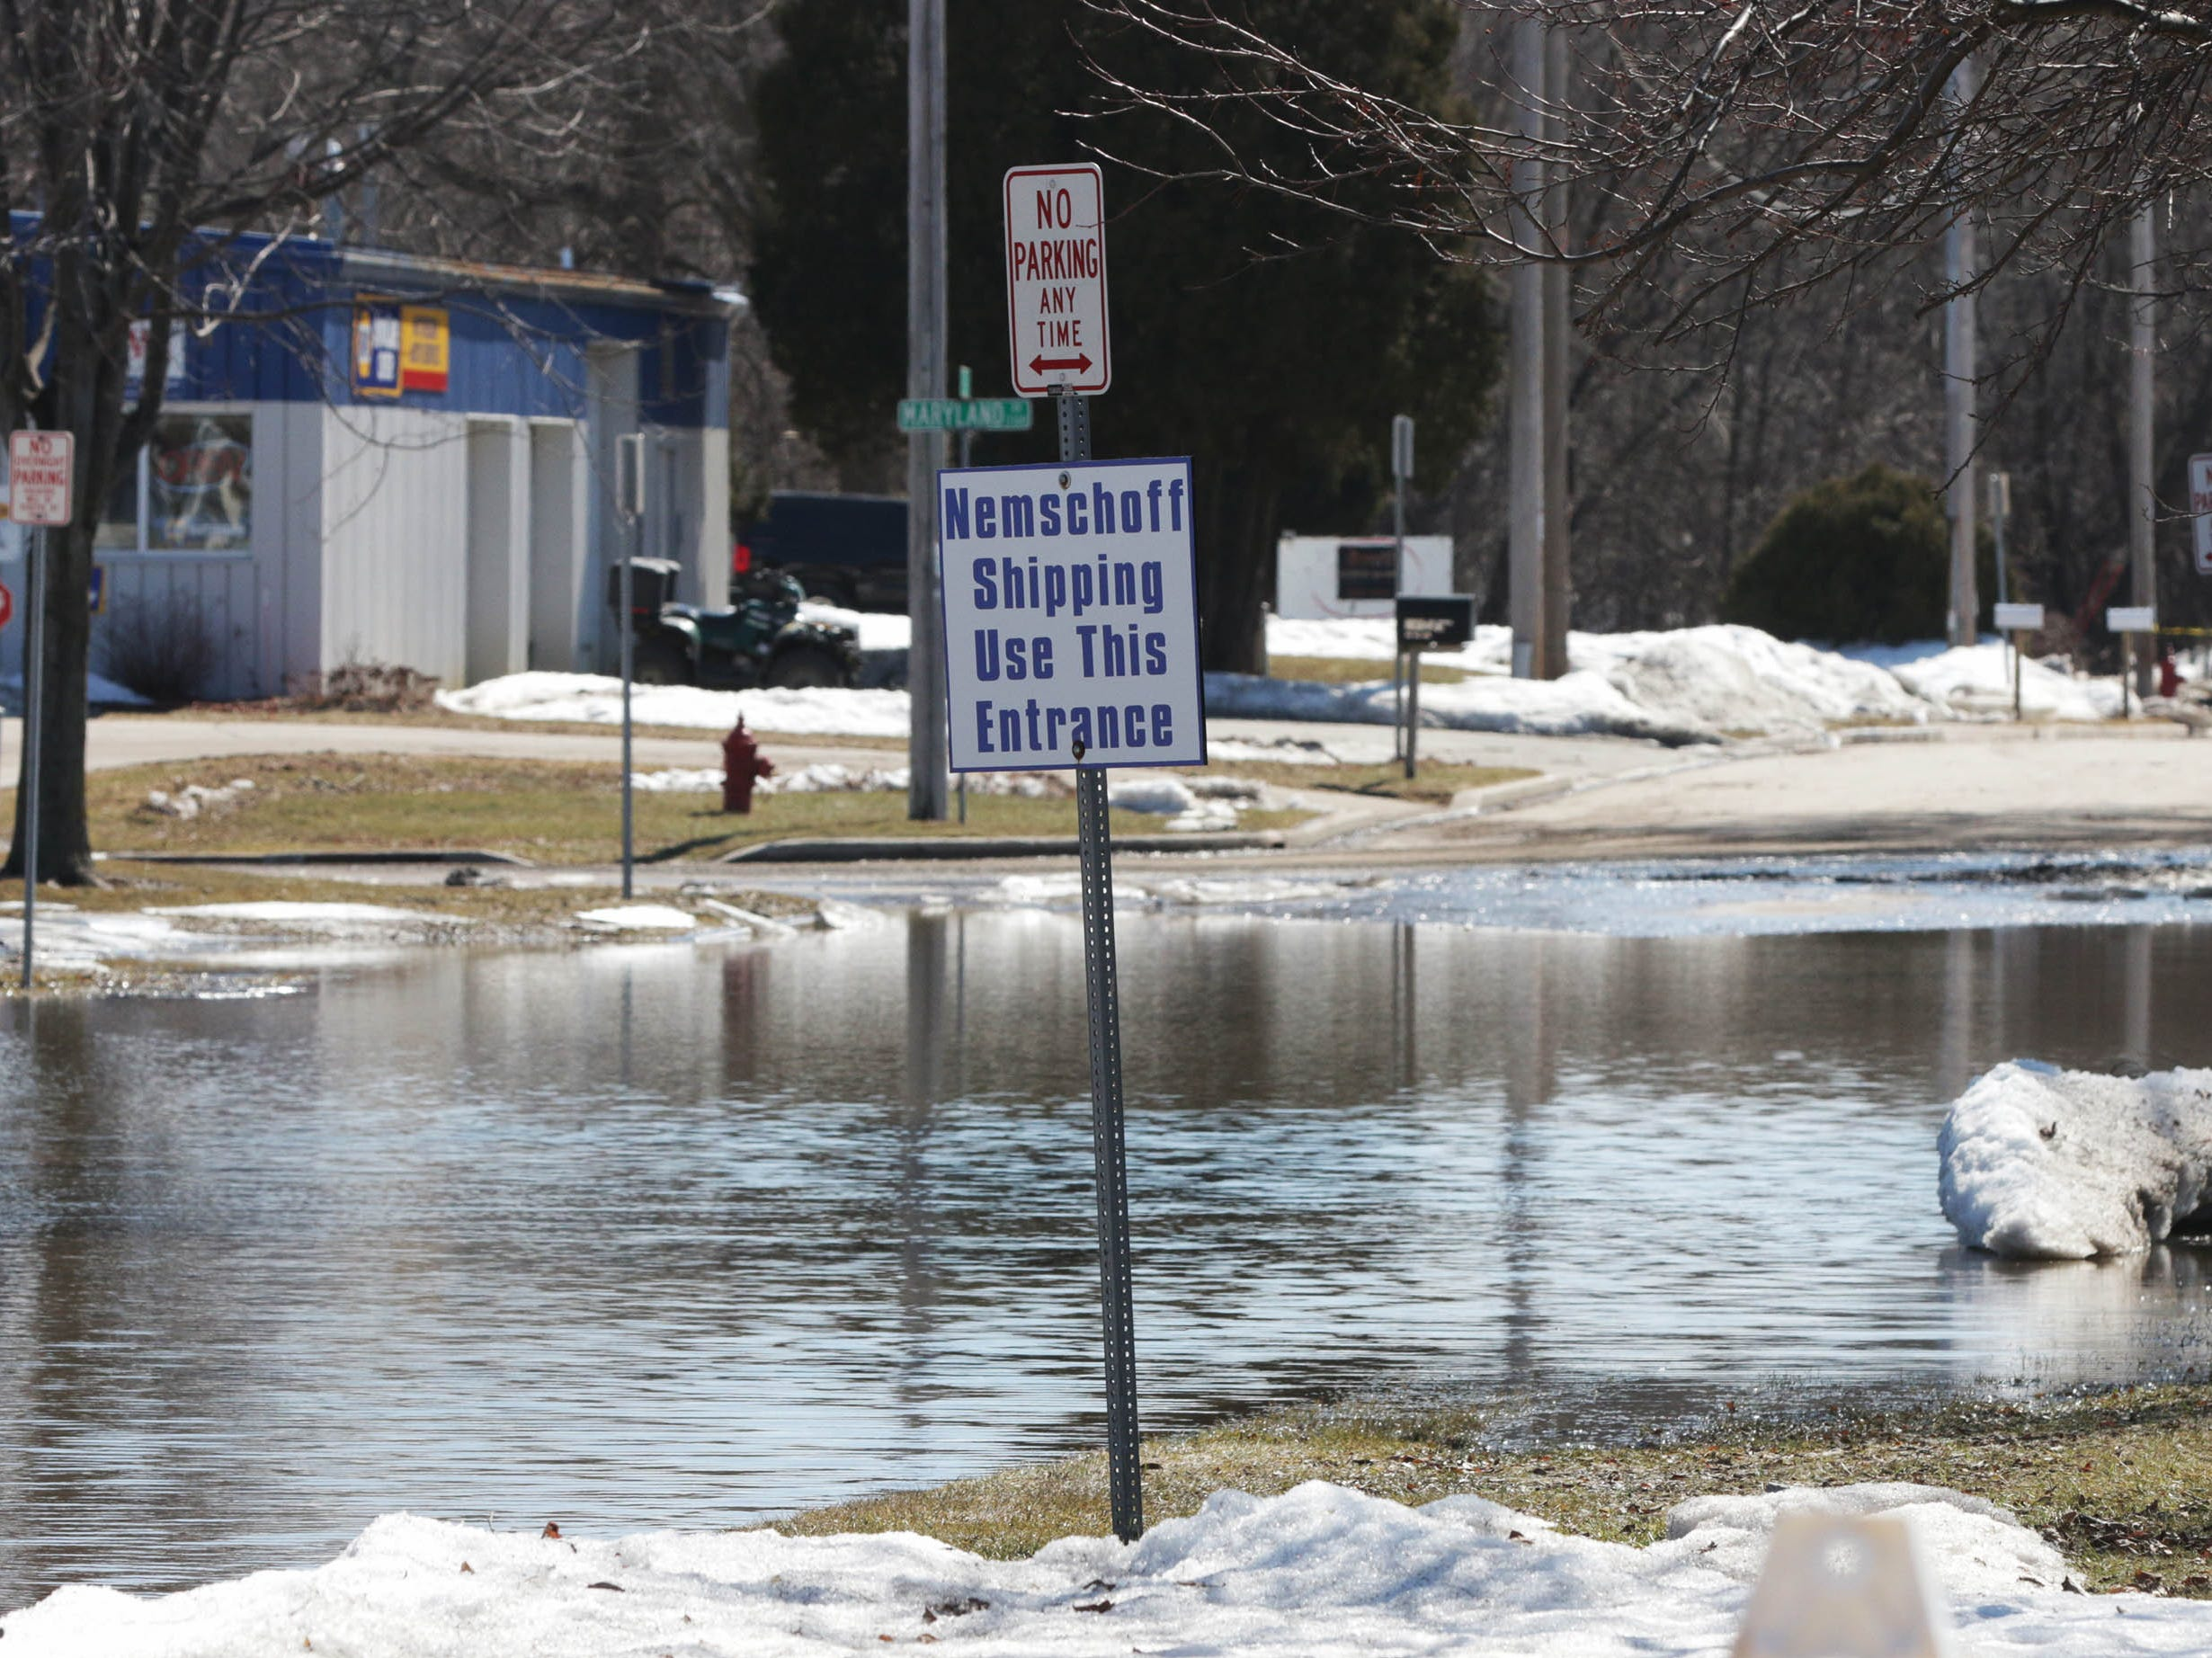 North 22nd Street, which leads to Nemschoff is closed while the city waits for the water to subside from flooding, Tuesday, March 19, 2019, in Sheboygan, Wis.